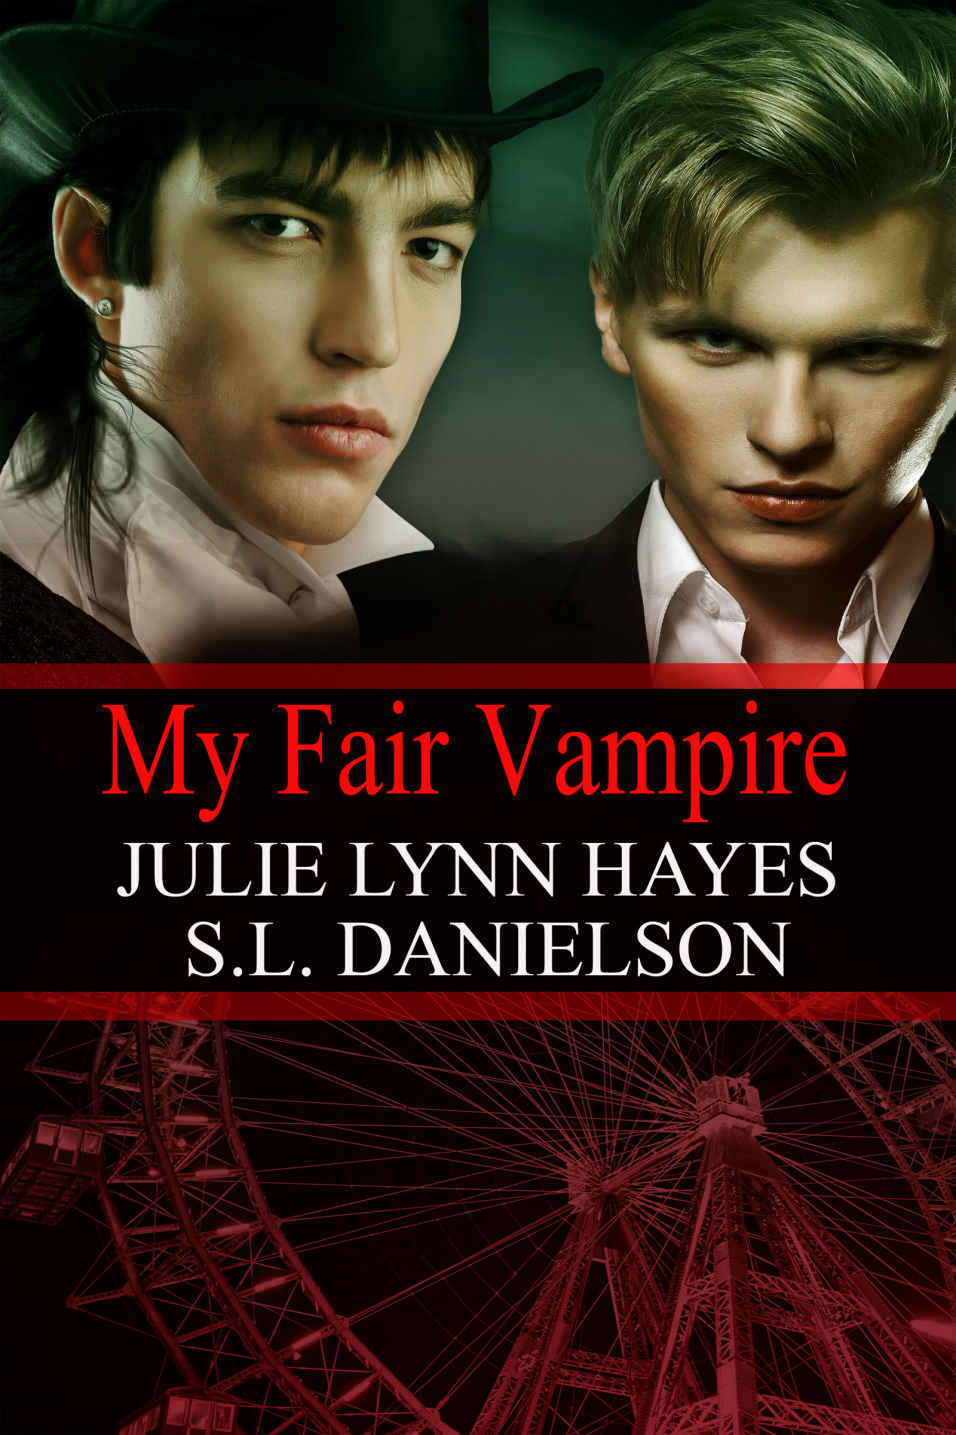 My Fair Vampire by S. L. Danielson and Julie Lynn Hayes